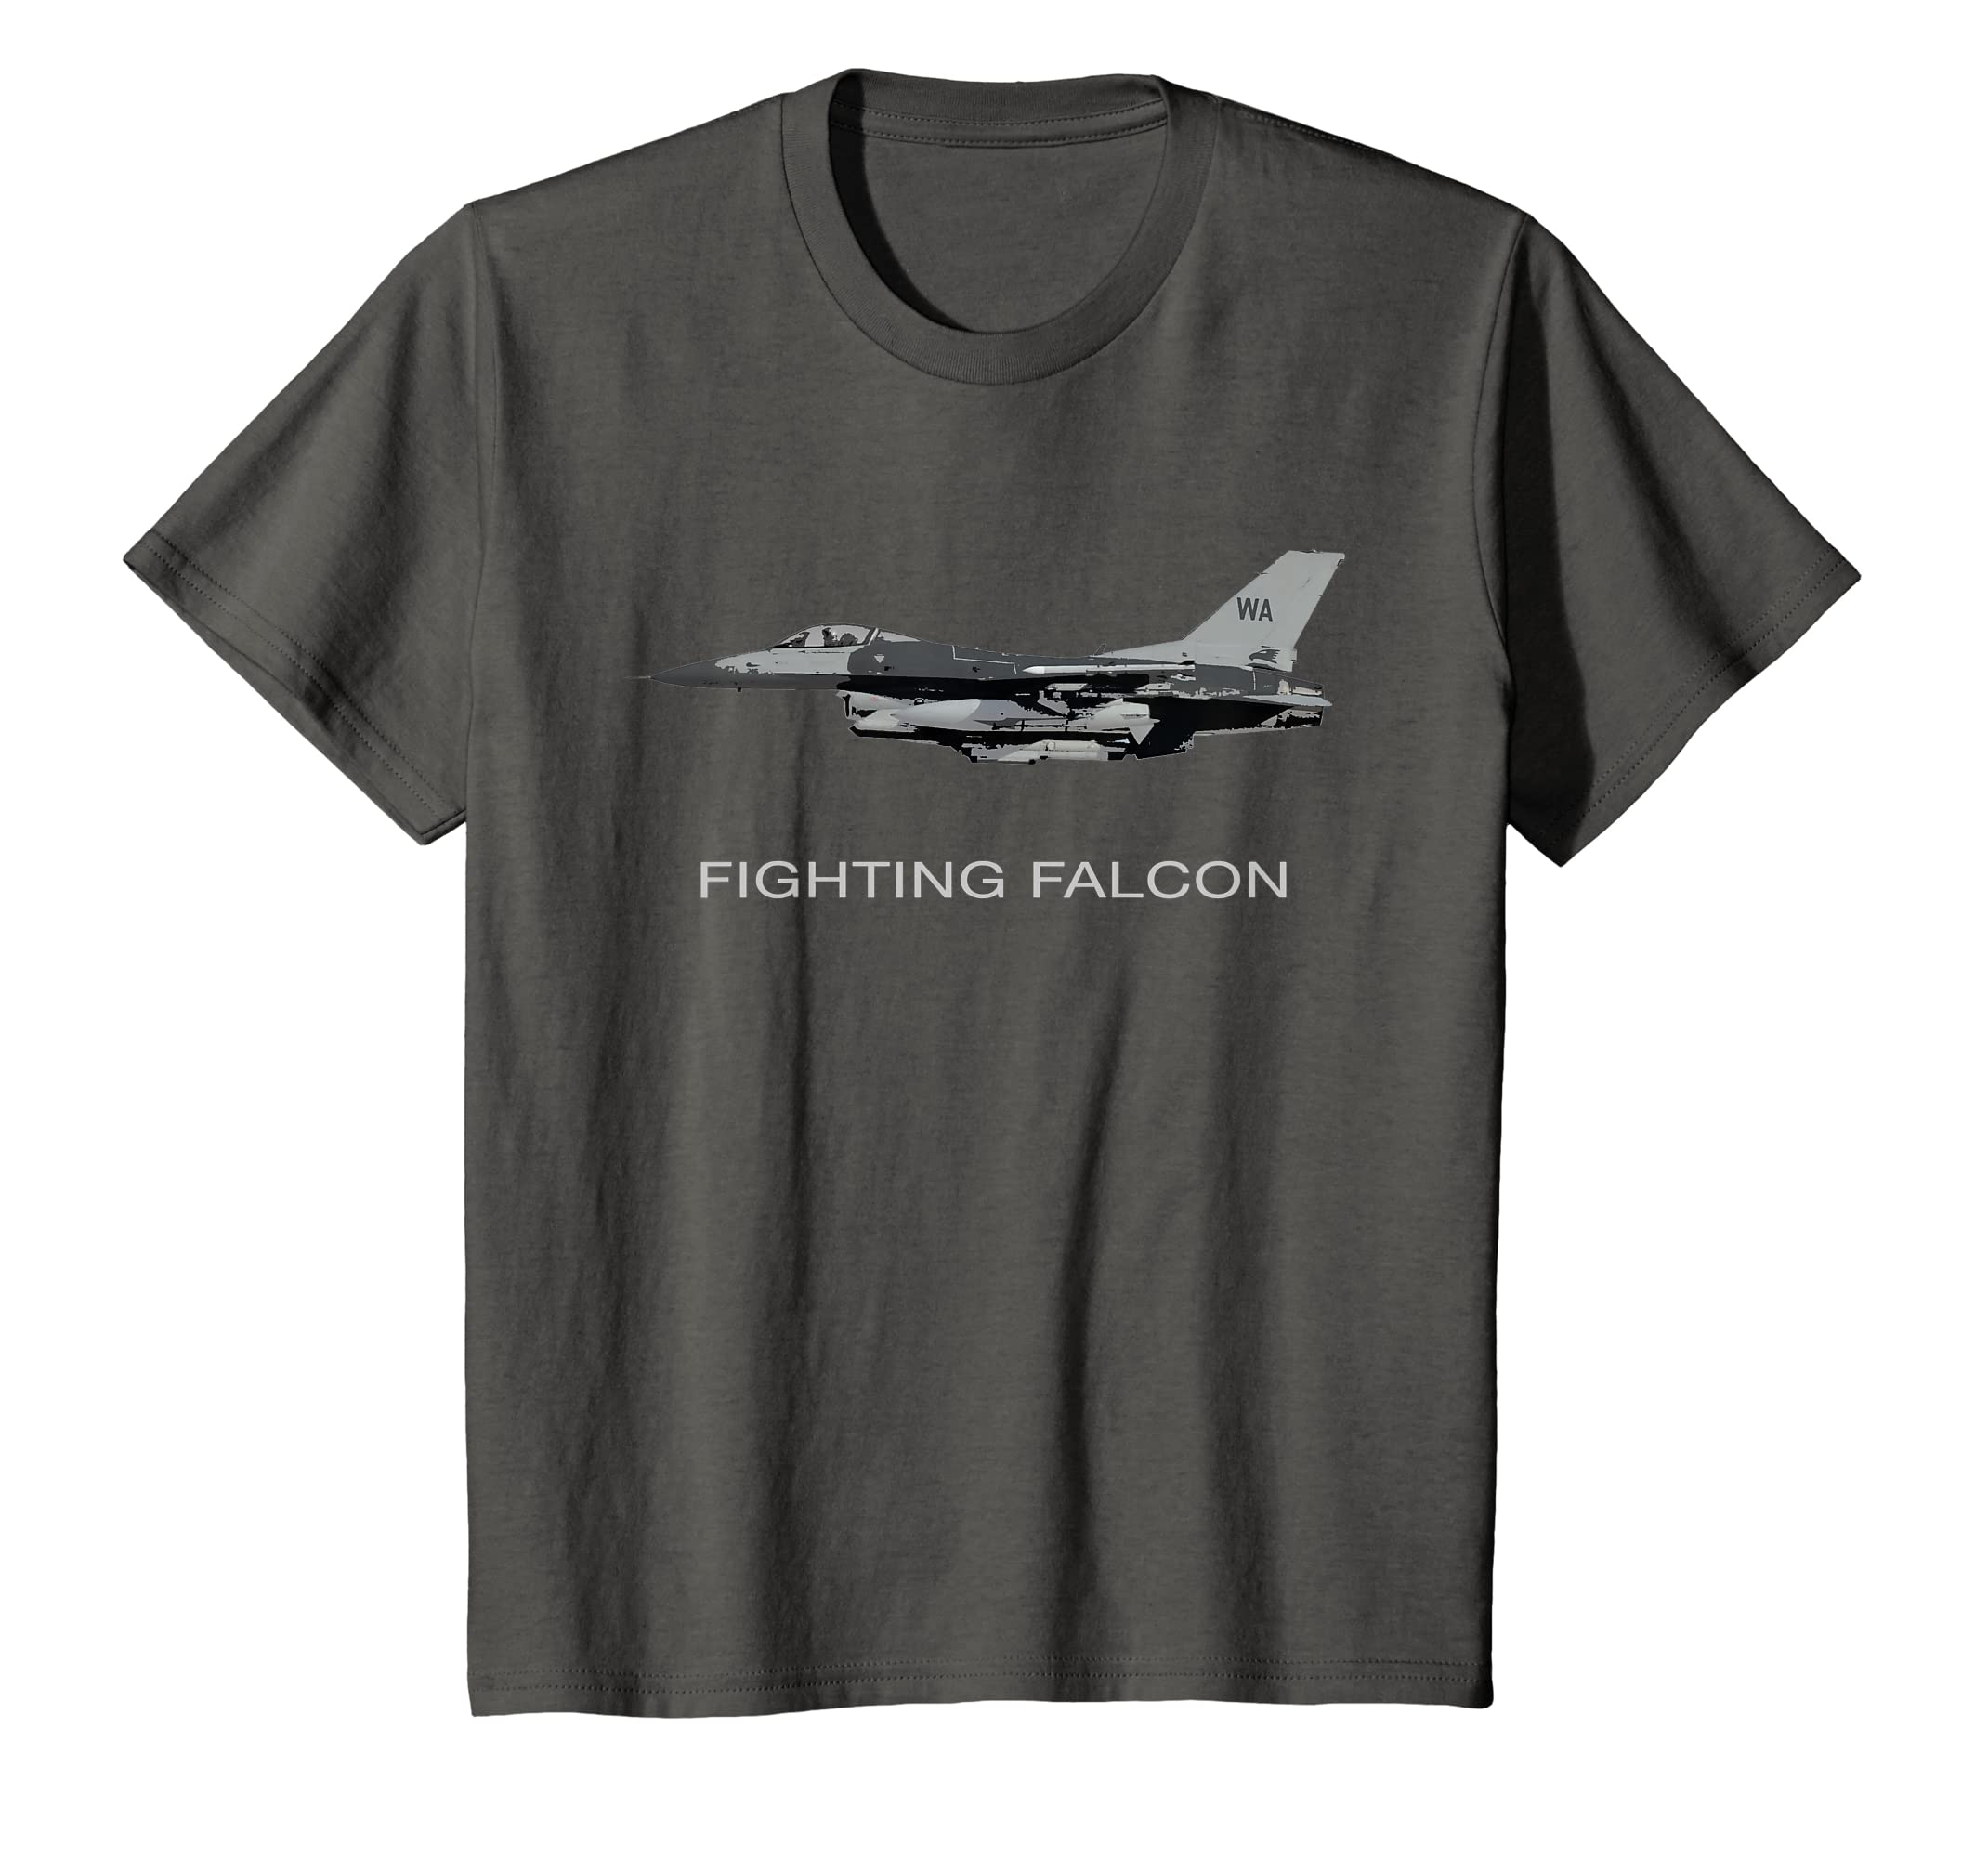 Amazon com: F-16 FIGHTING FALCON JET FIGHTER PLANE T SHIRT